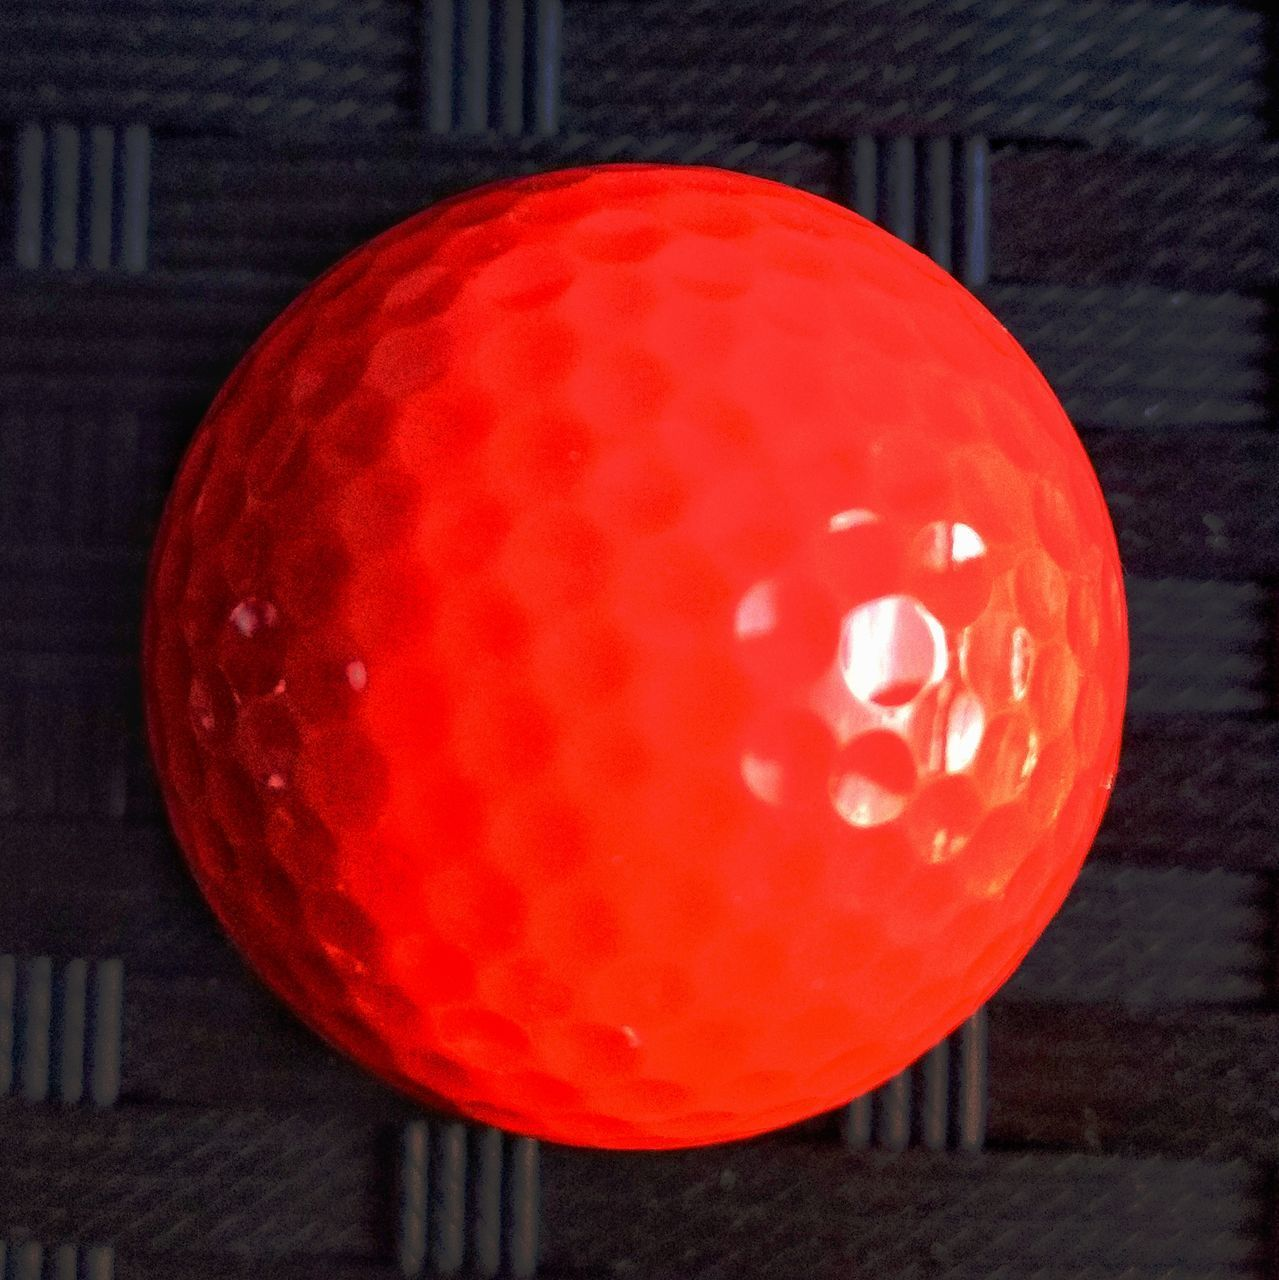 CLOSE-UP OF RED BALL ON TABLE AGAINST ILLUMINATED WALL